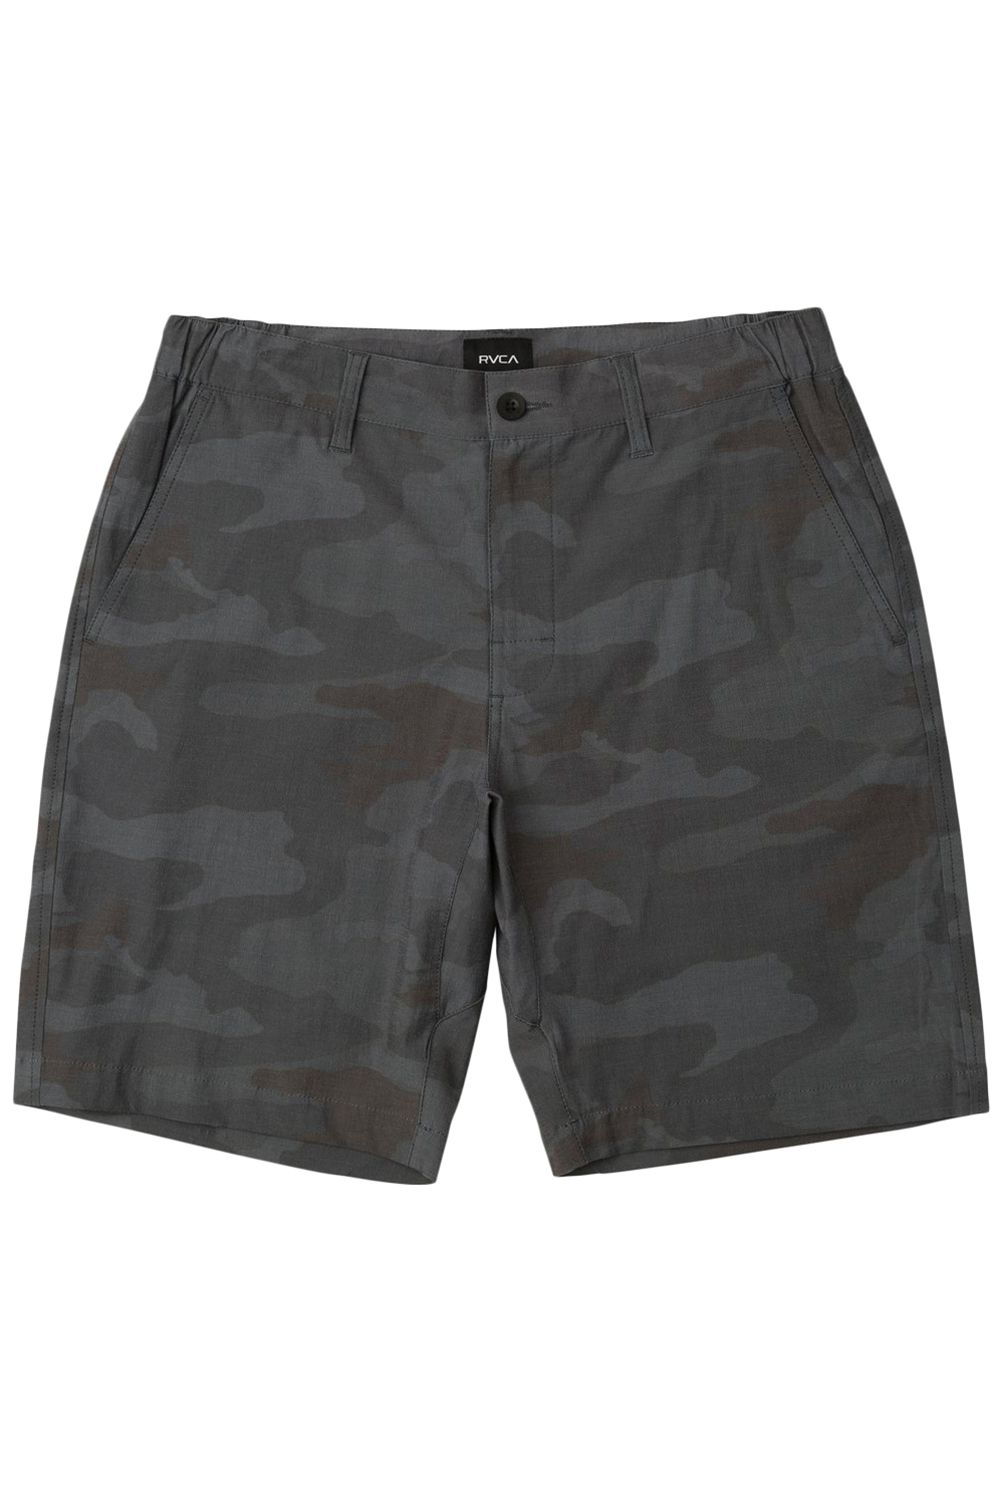 Walkshorts RVCA ALL TIME COASTAL PRI ALL TIME COLLECTION Black Camo